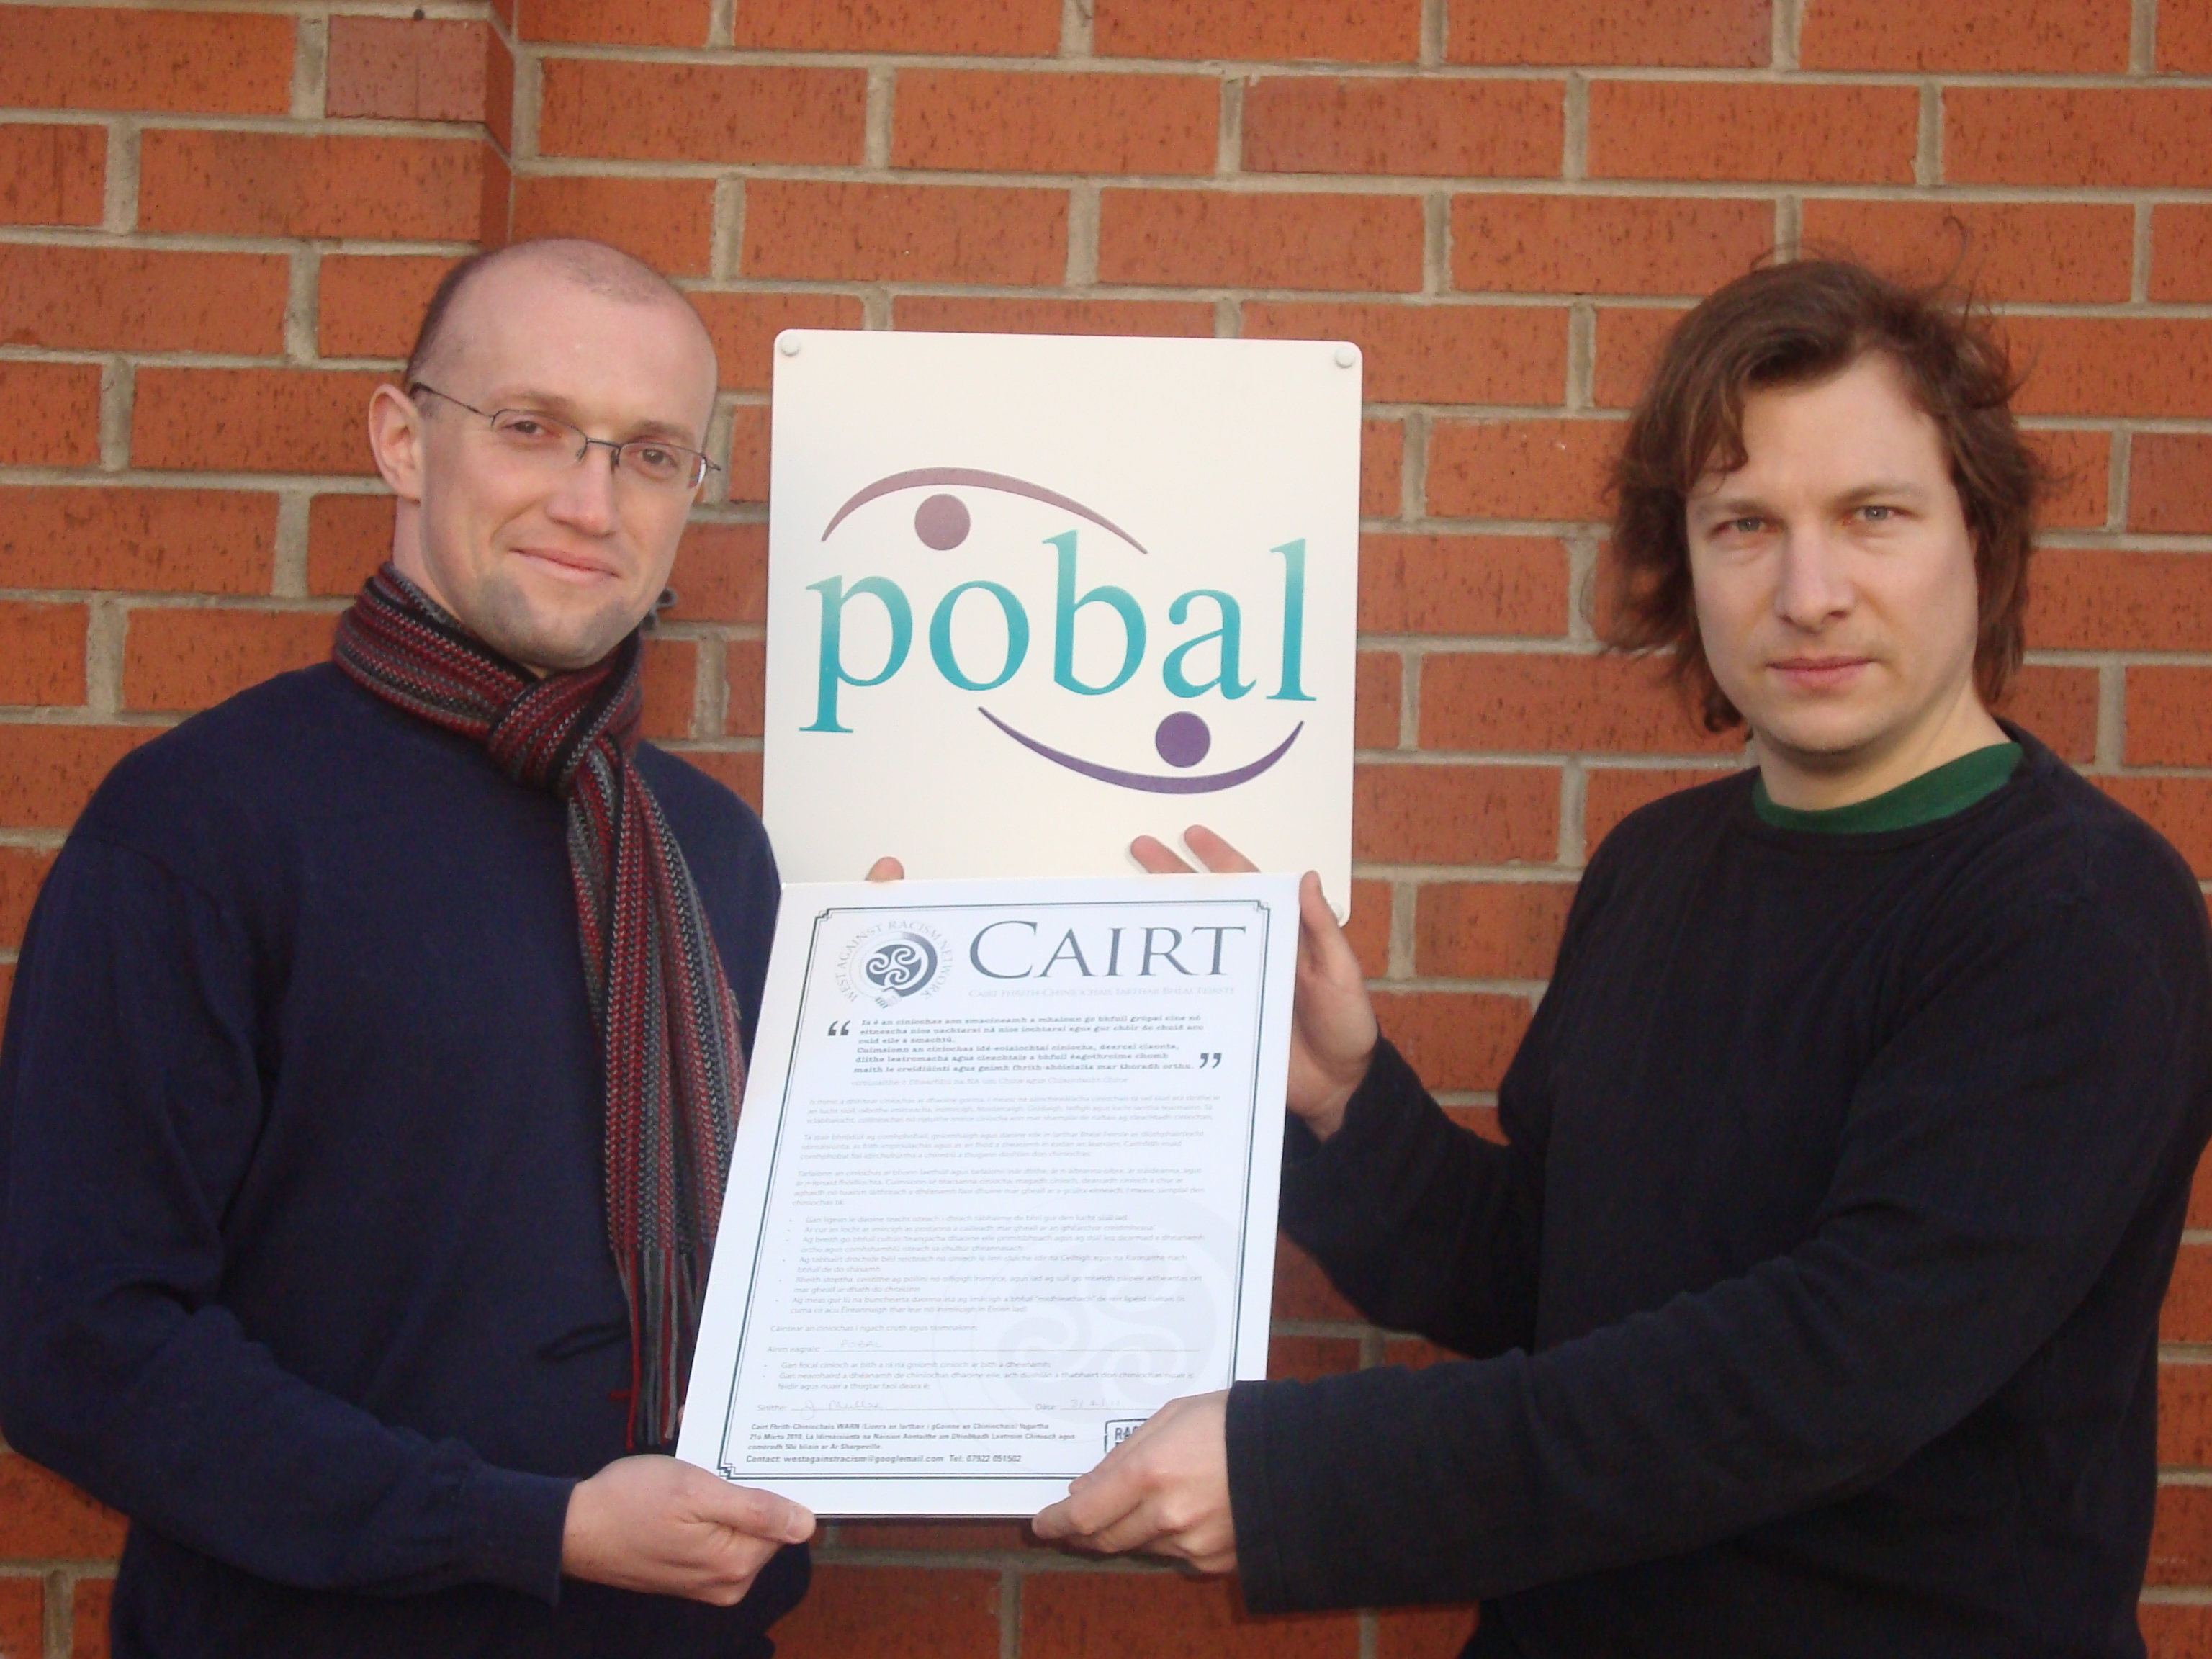 Pobal Signs The Charter